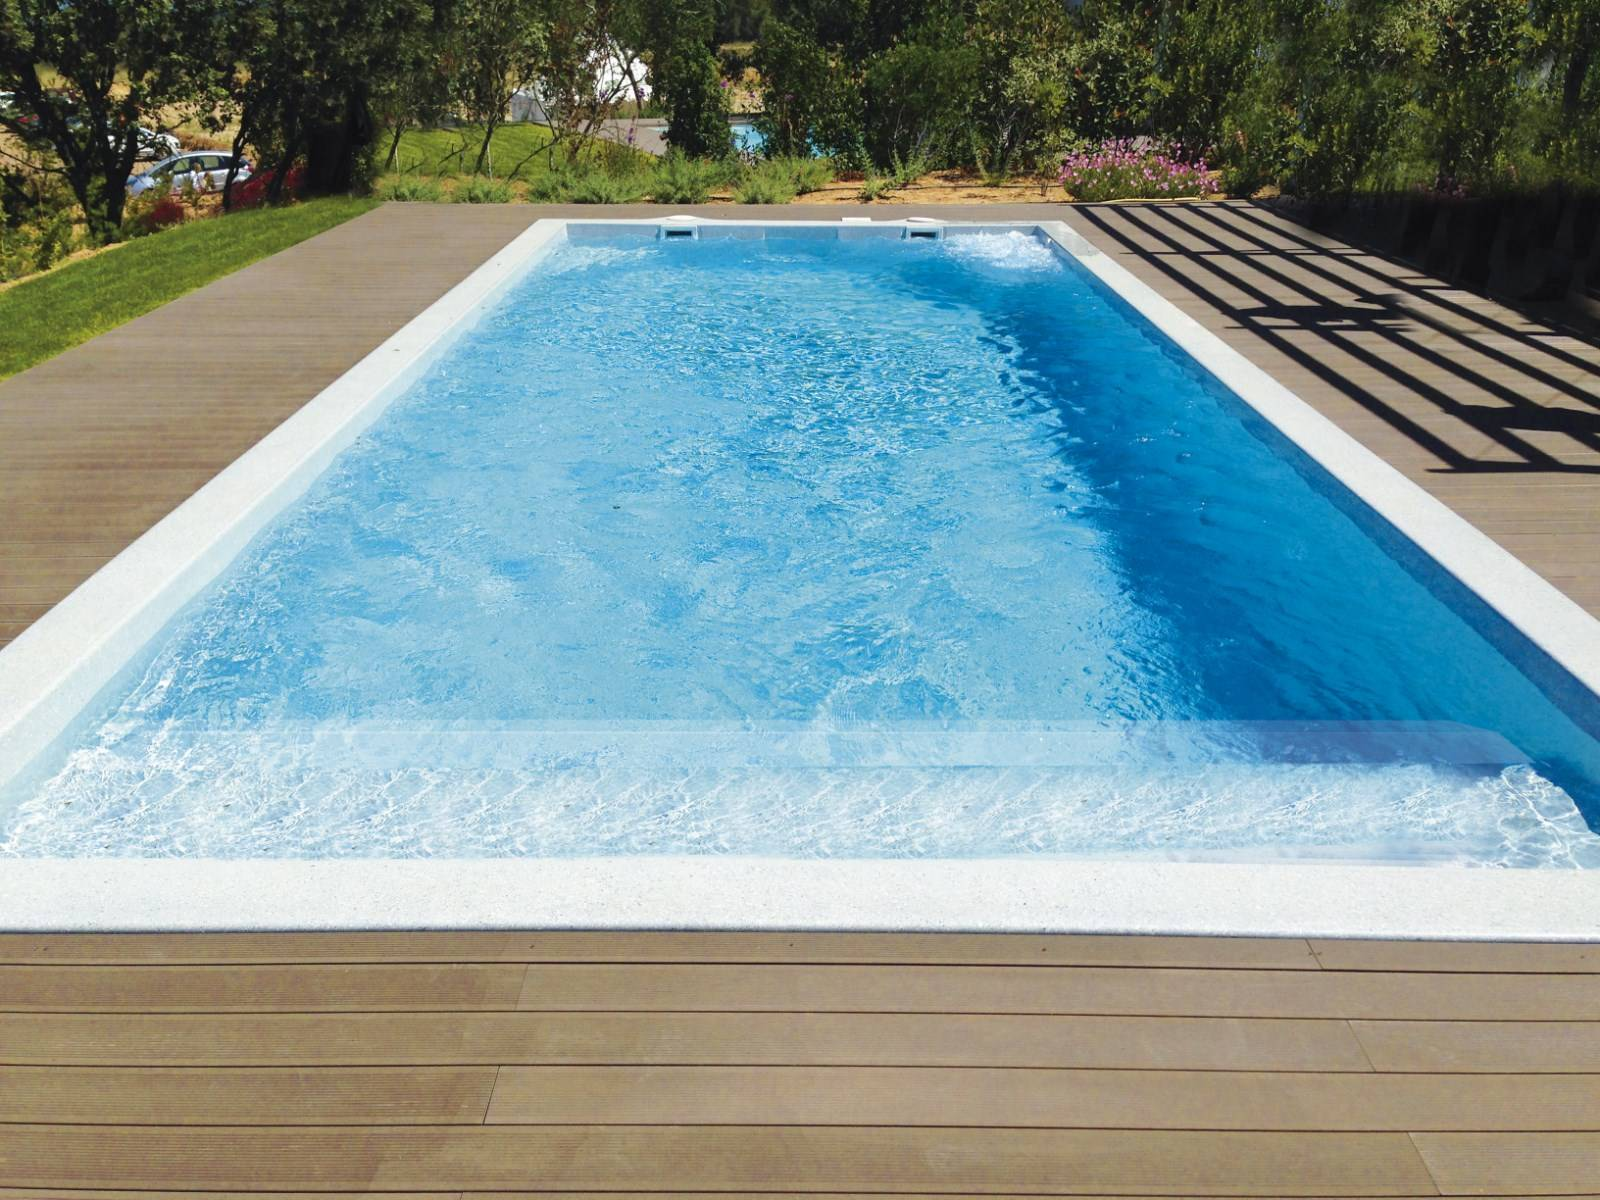 Piscine coque polyester freedom mod le riviera for Budget piscine coque